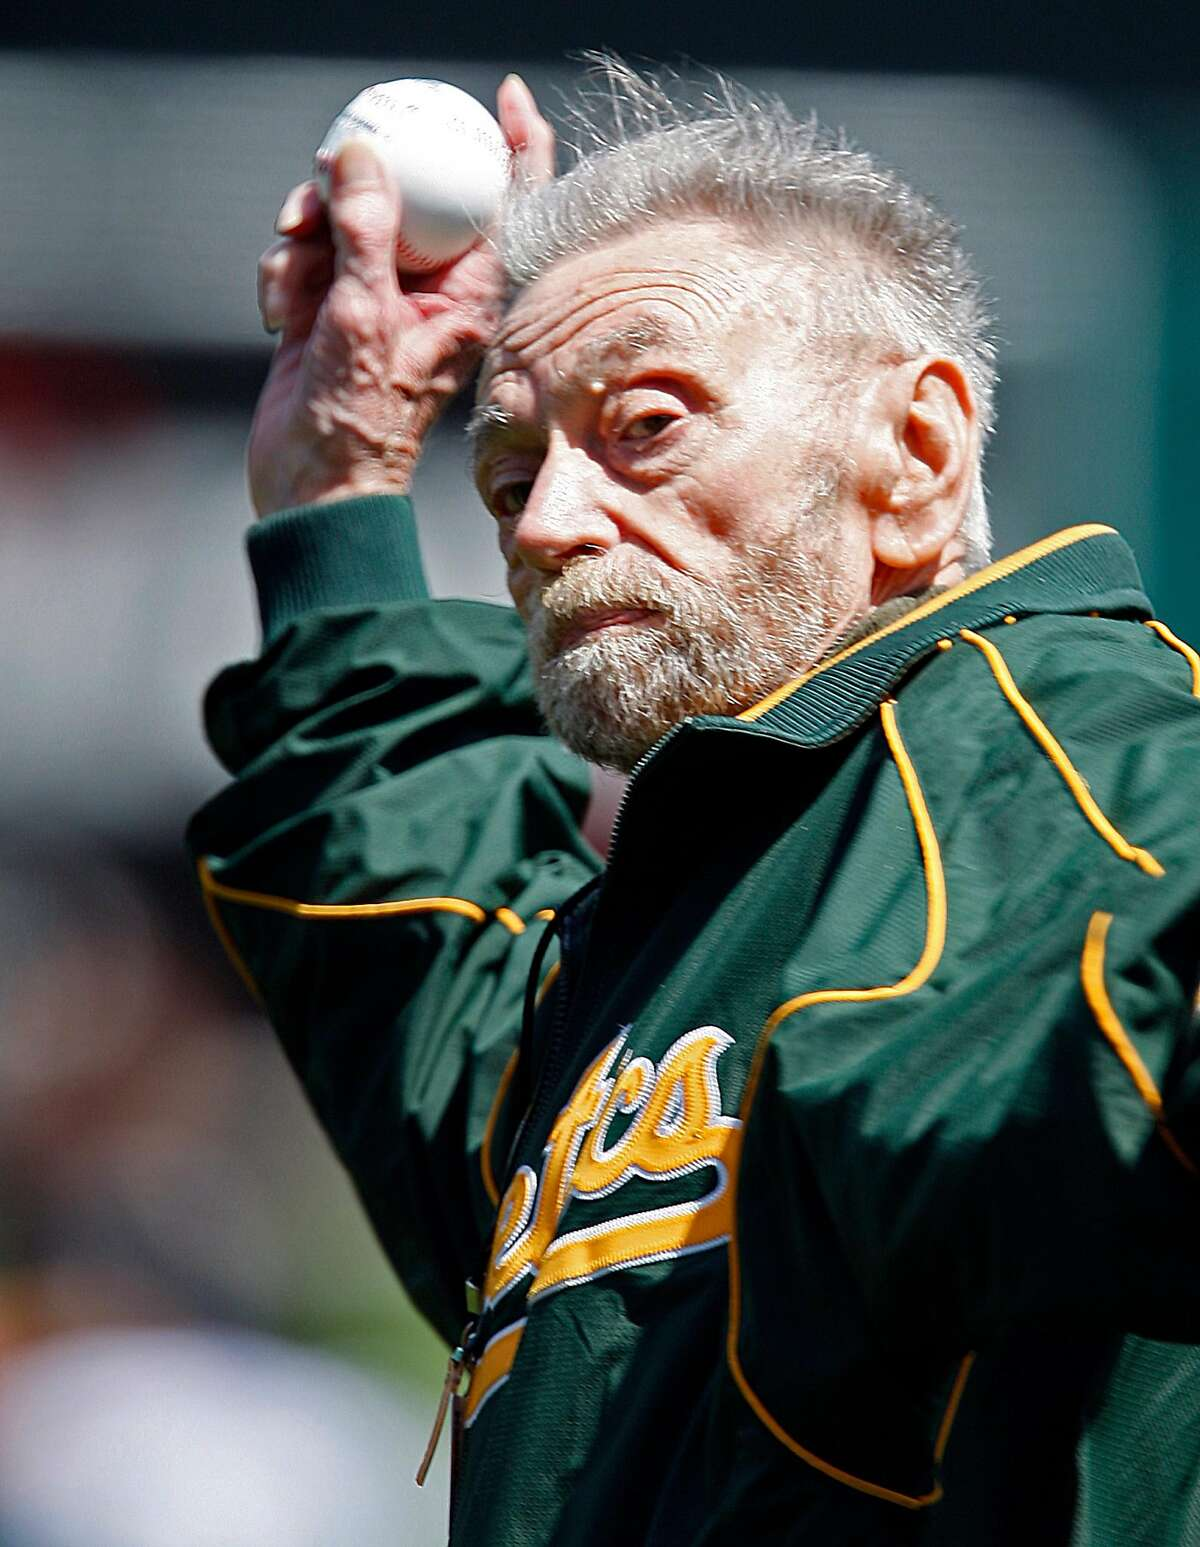 Oakland Athletics' longtime public address announcer Roy Steele throws out the ceremonial first pitch before a baseball game between the A's and the Baltimore Orioles, Saturday, April 17, 2010, in Oakland, Calif. (AP Photo/Ben Margot)